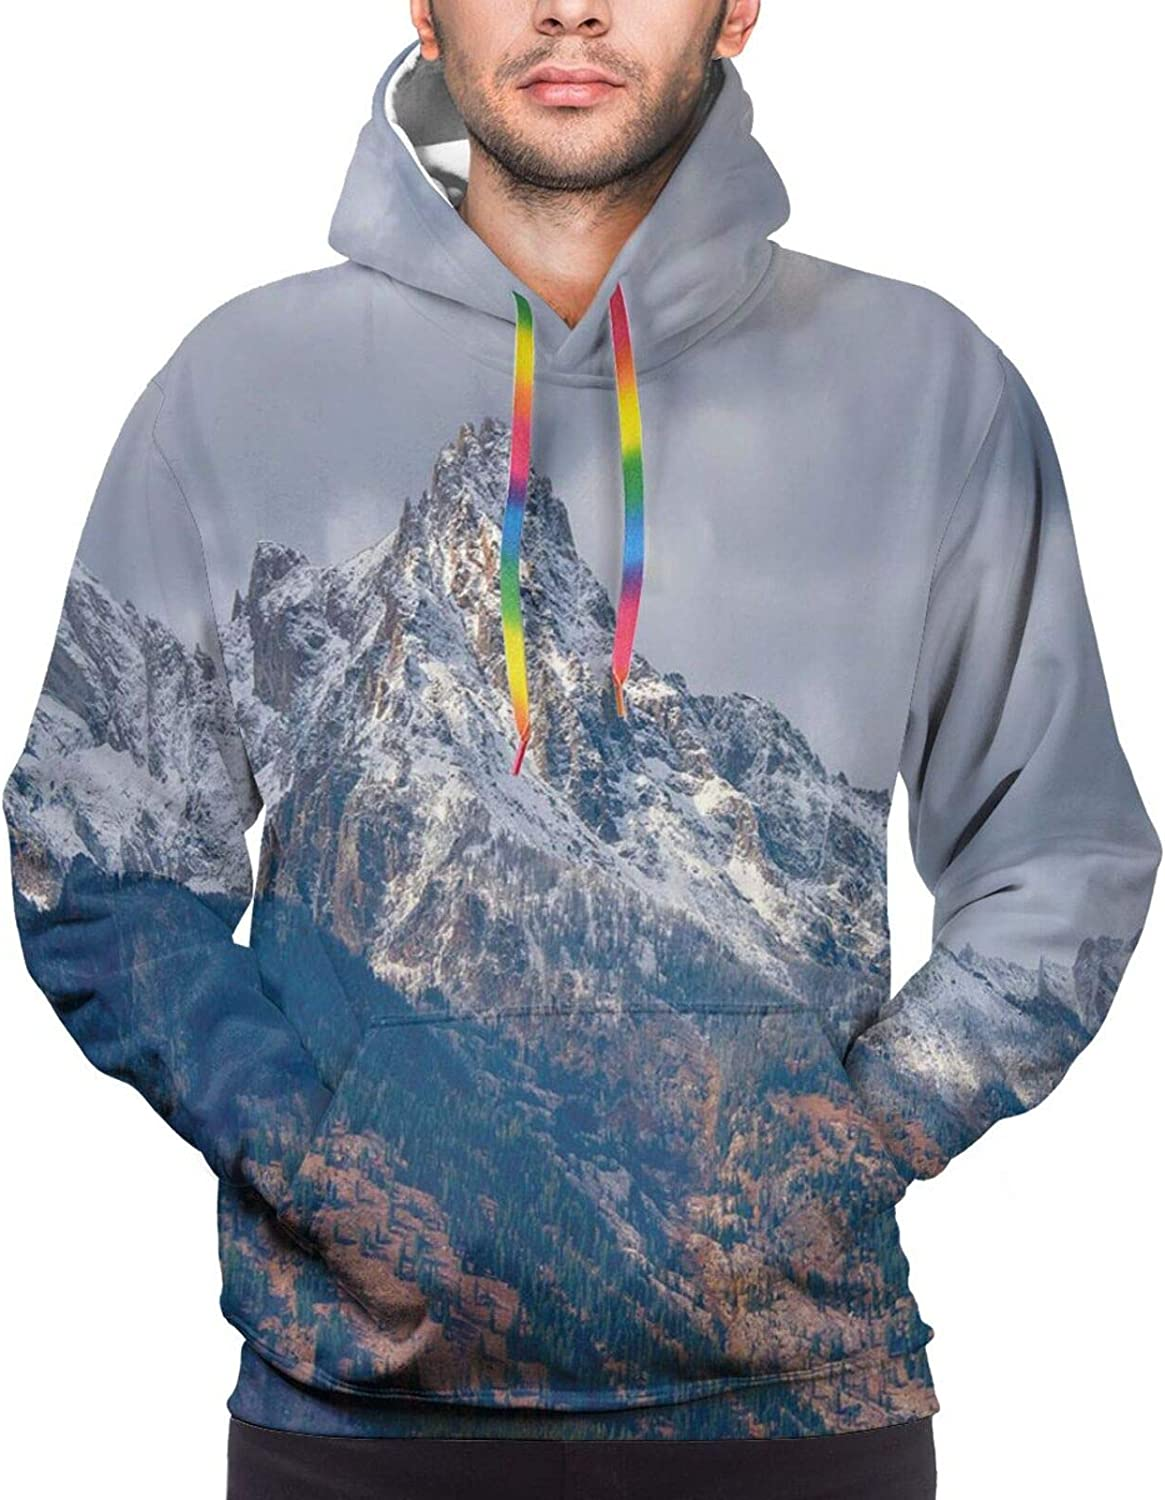 Men's Hoodies Sweatshirts,Snow Falls On The Spruce Forest Fir Trees Seasonal Nature Woods ICY Cold Xmas Time